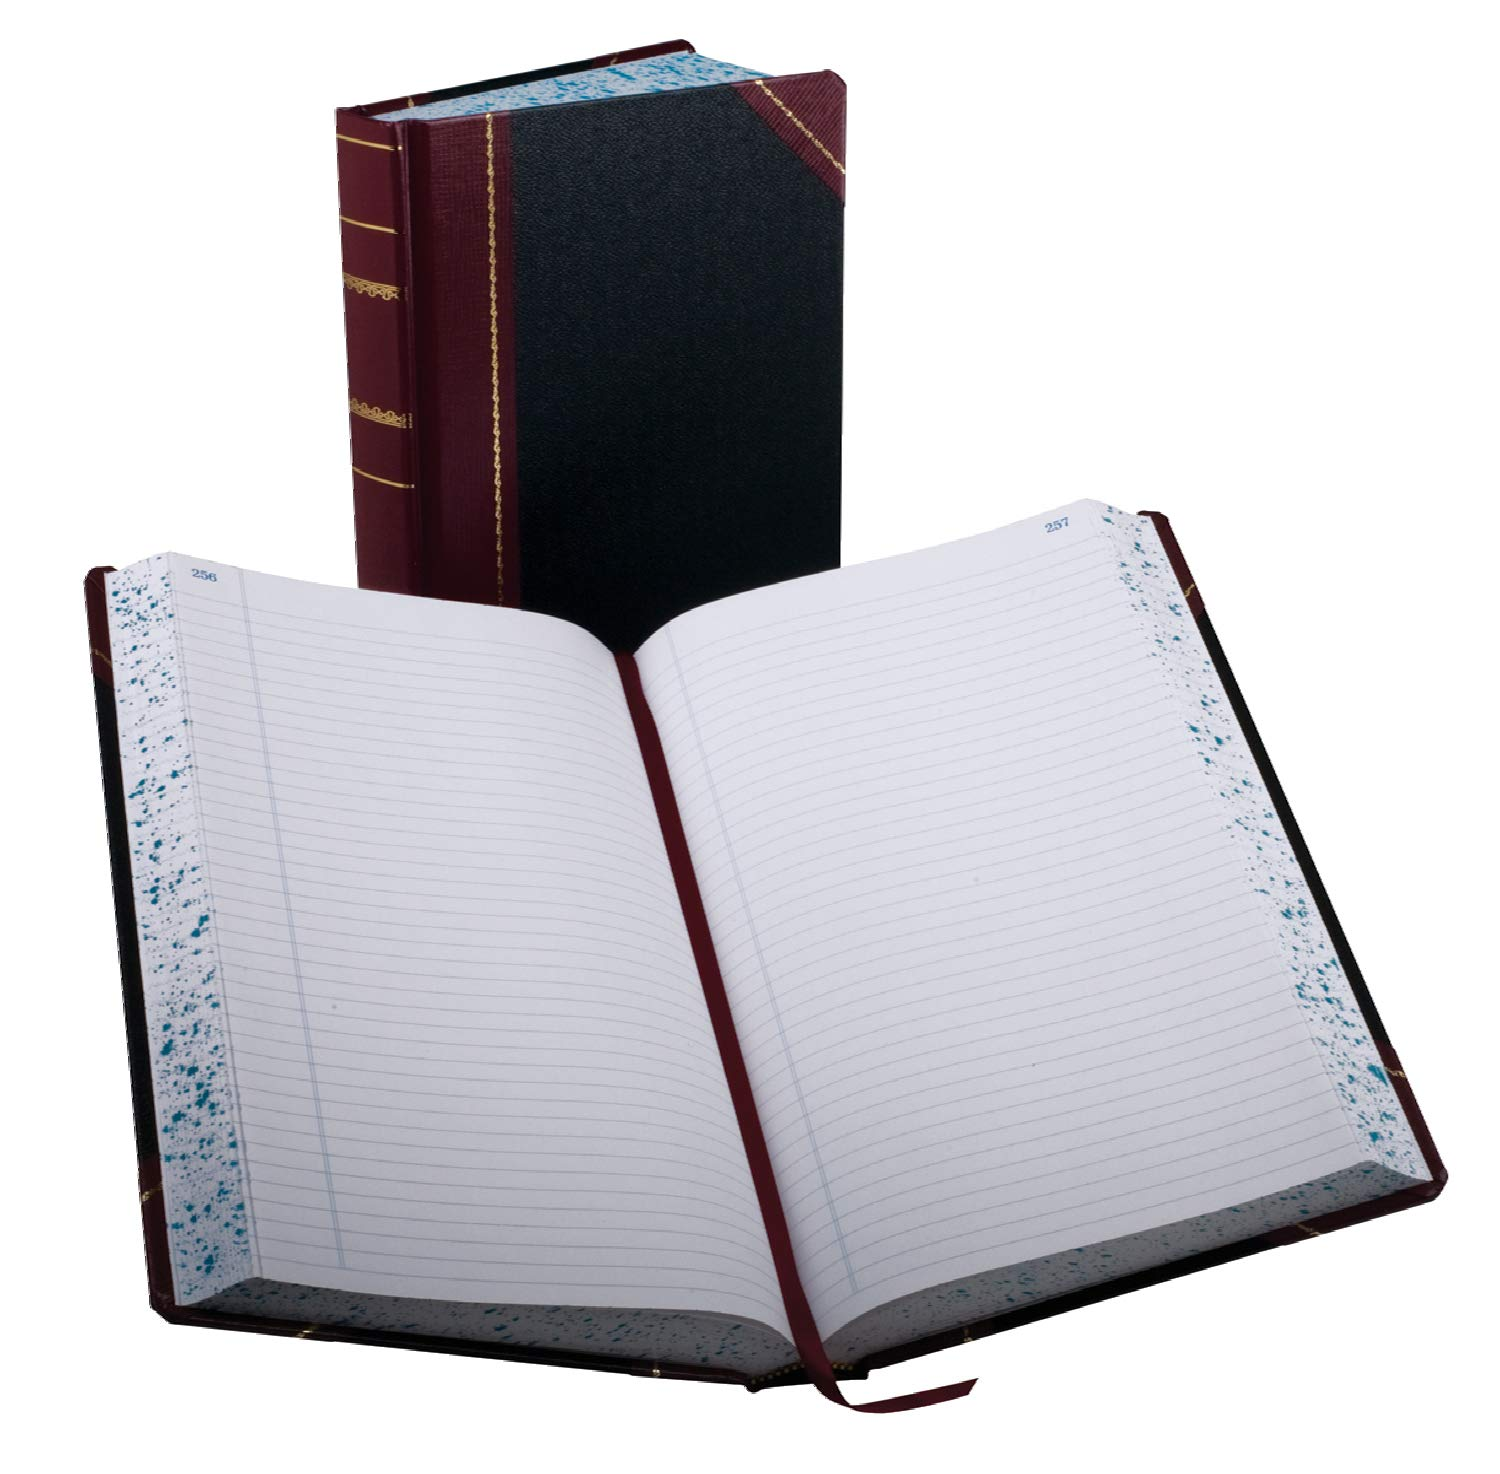 Boorum & Pease 9-500-R Record/account book, black/red cover, record rule, 14-1/8 x 8-5/8, 500 pages Esselte Corporation 9500R